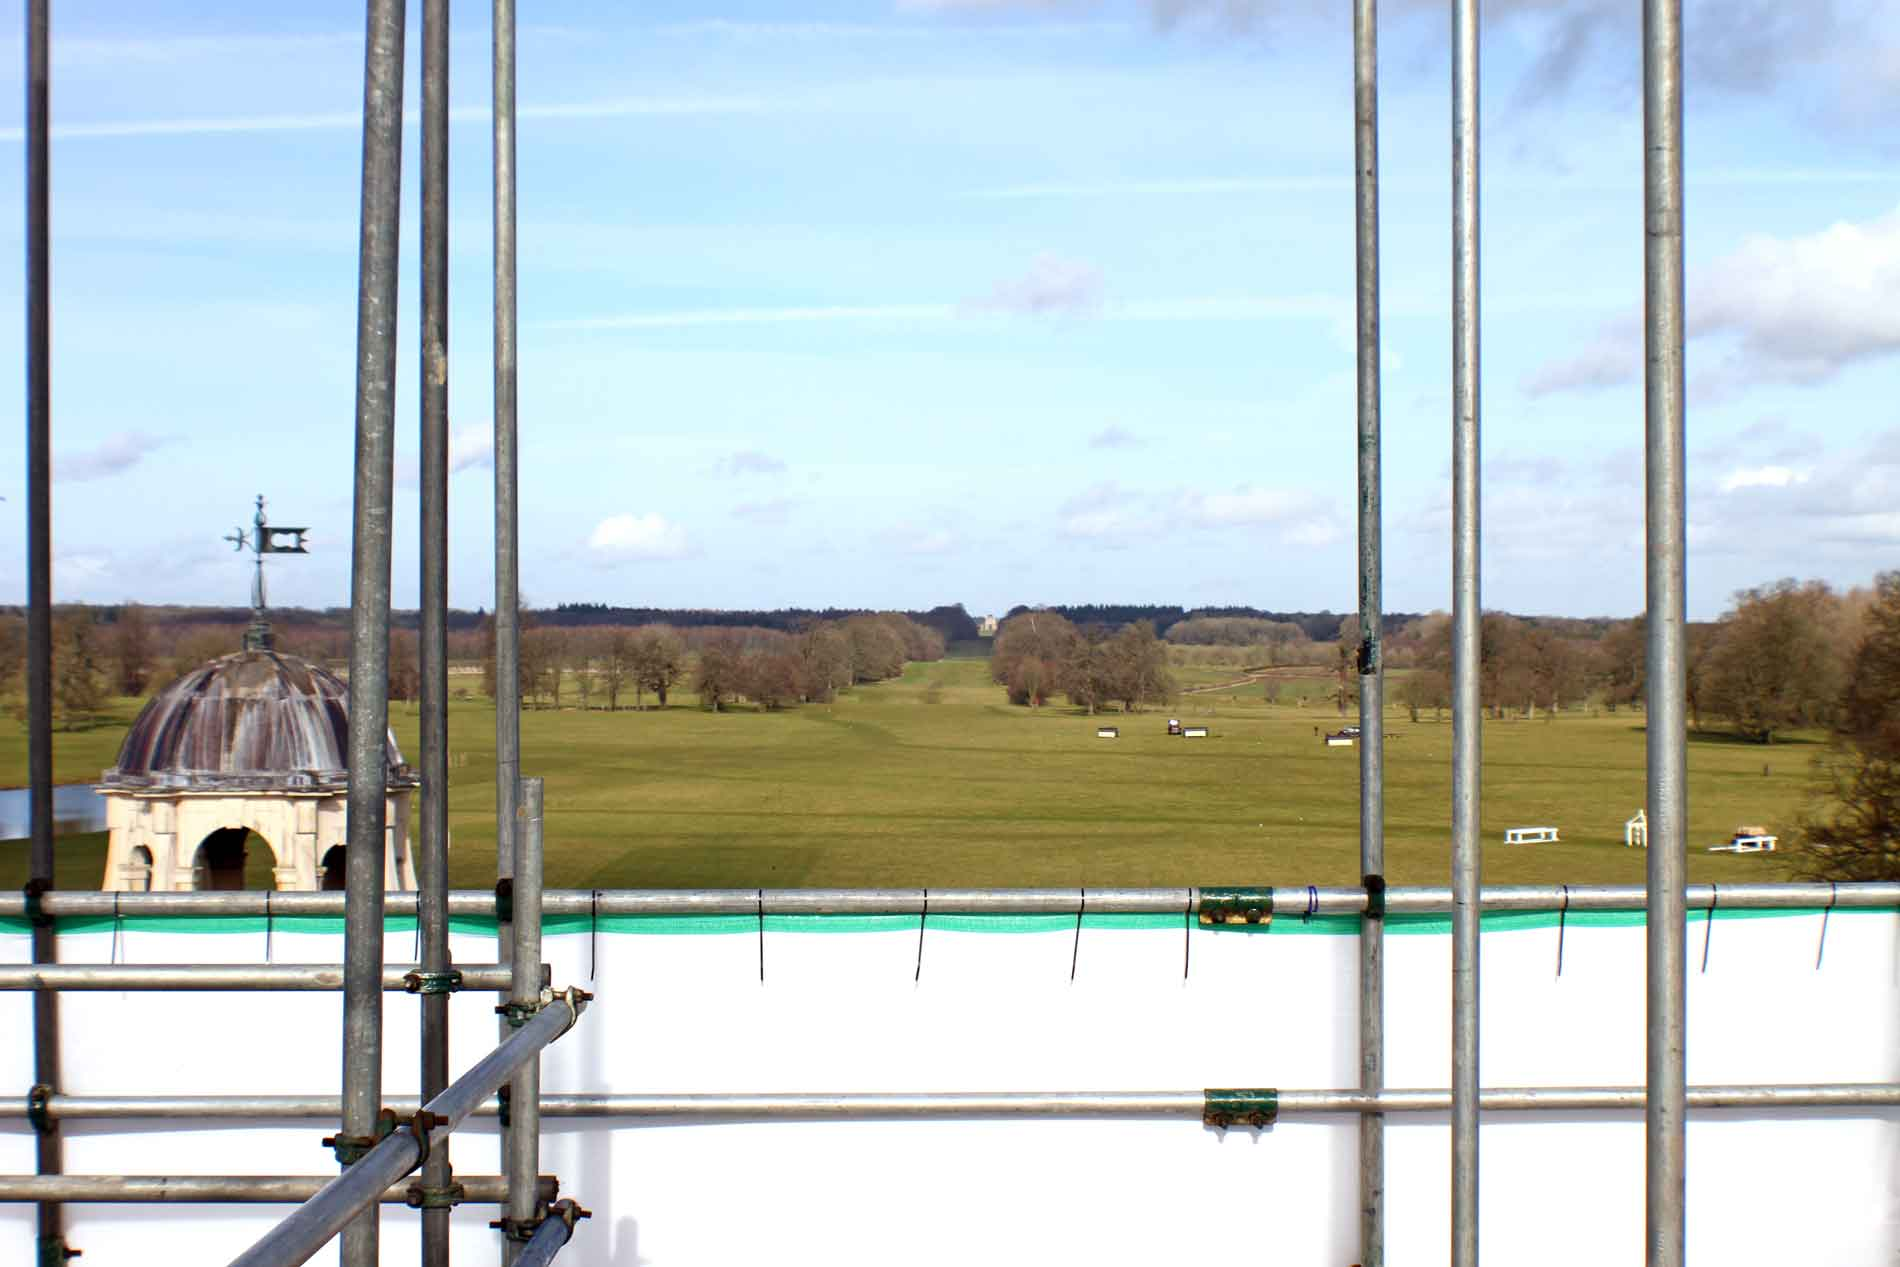 Majestic View of Badminton Park from the Scaffolding